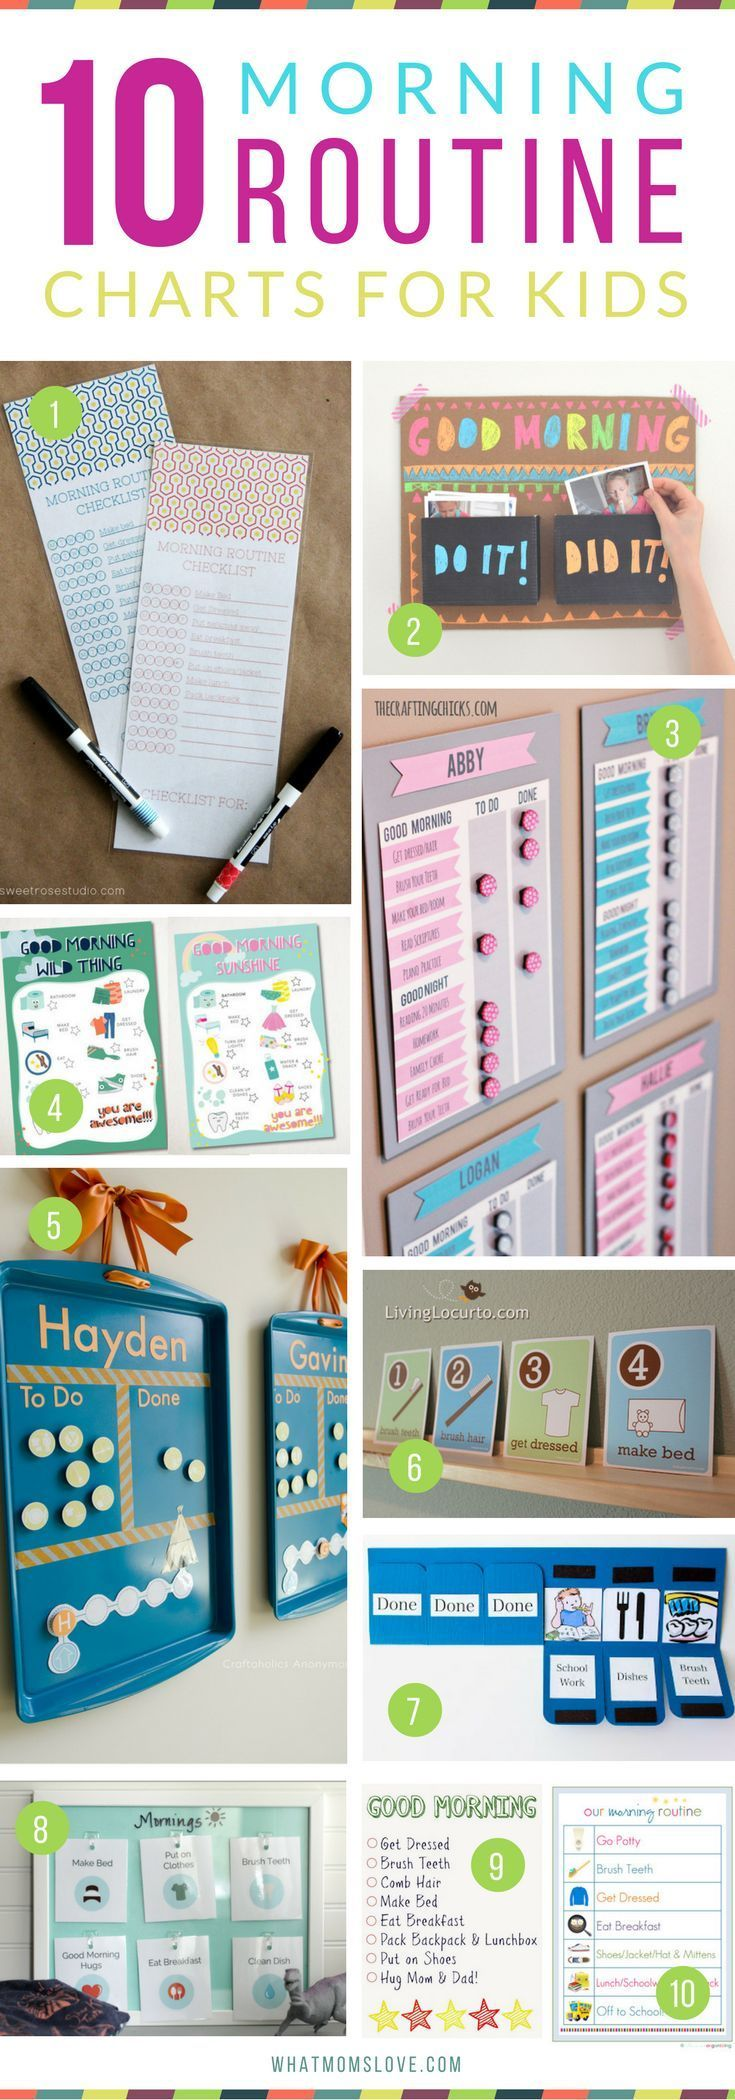 Morning Routine Charts For Kids | Hacks, Tips and Tricks for Organized, Stress-Free Mornings with kids - perfect for back to school!